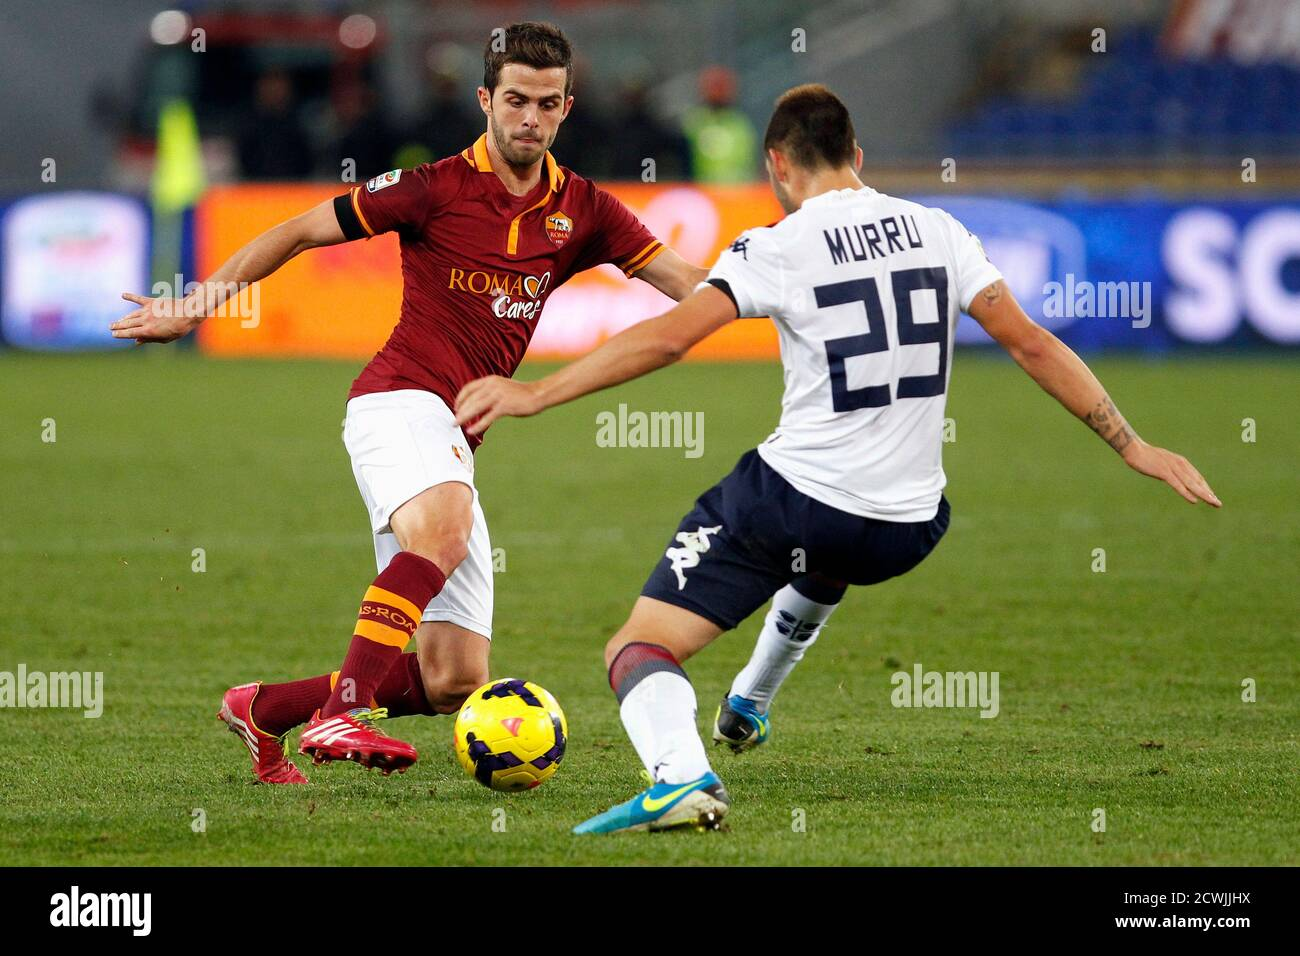 AS Roma's Miralem Pjanic (L) and Cagliari's Nicola Murru fight for the ball during their Italian Serie A soccer match at the Olympic stadium in Rome November 25, 2013. REUTERS/Giampiero Sposito (ITALY - Tags: SPORT SOCCER) Stock Photo